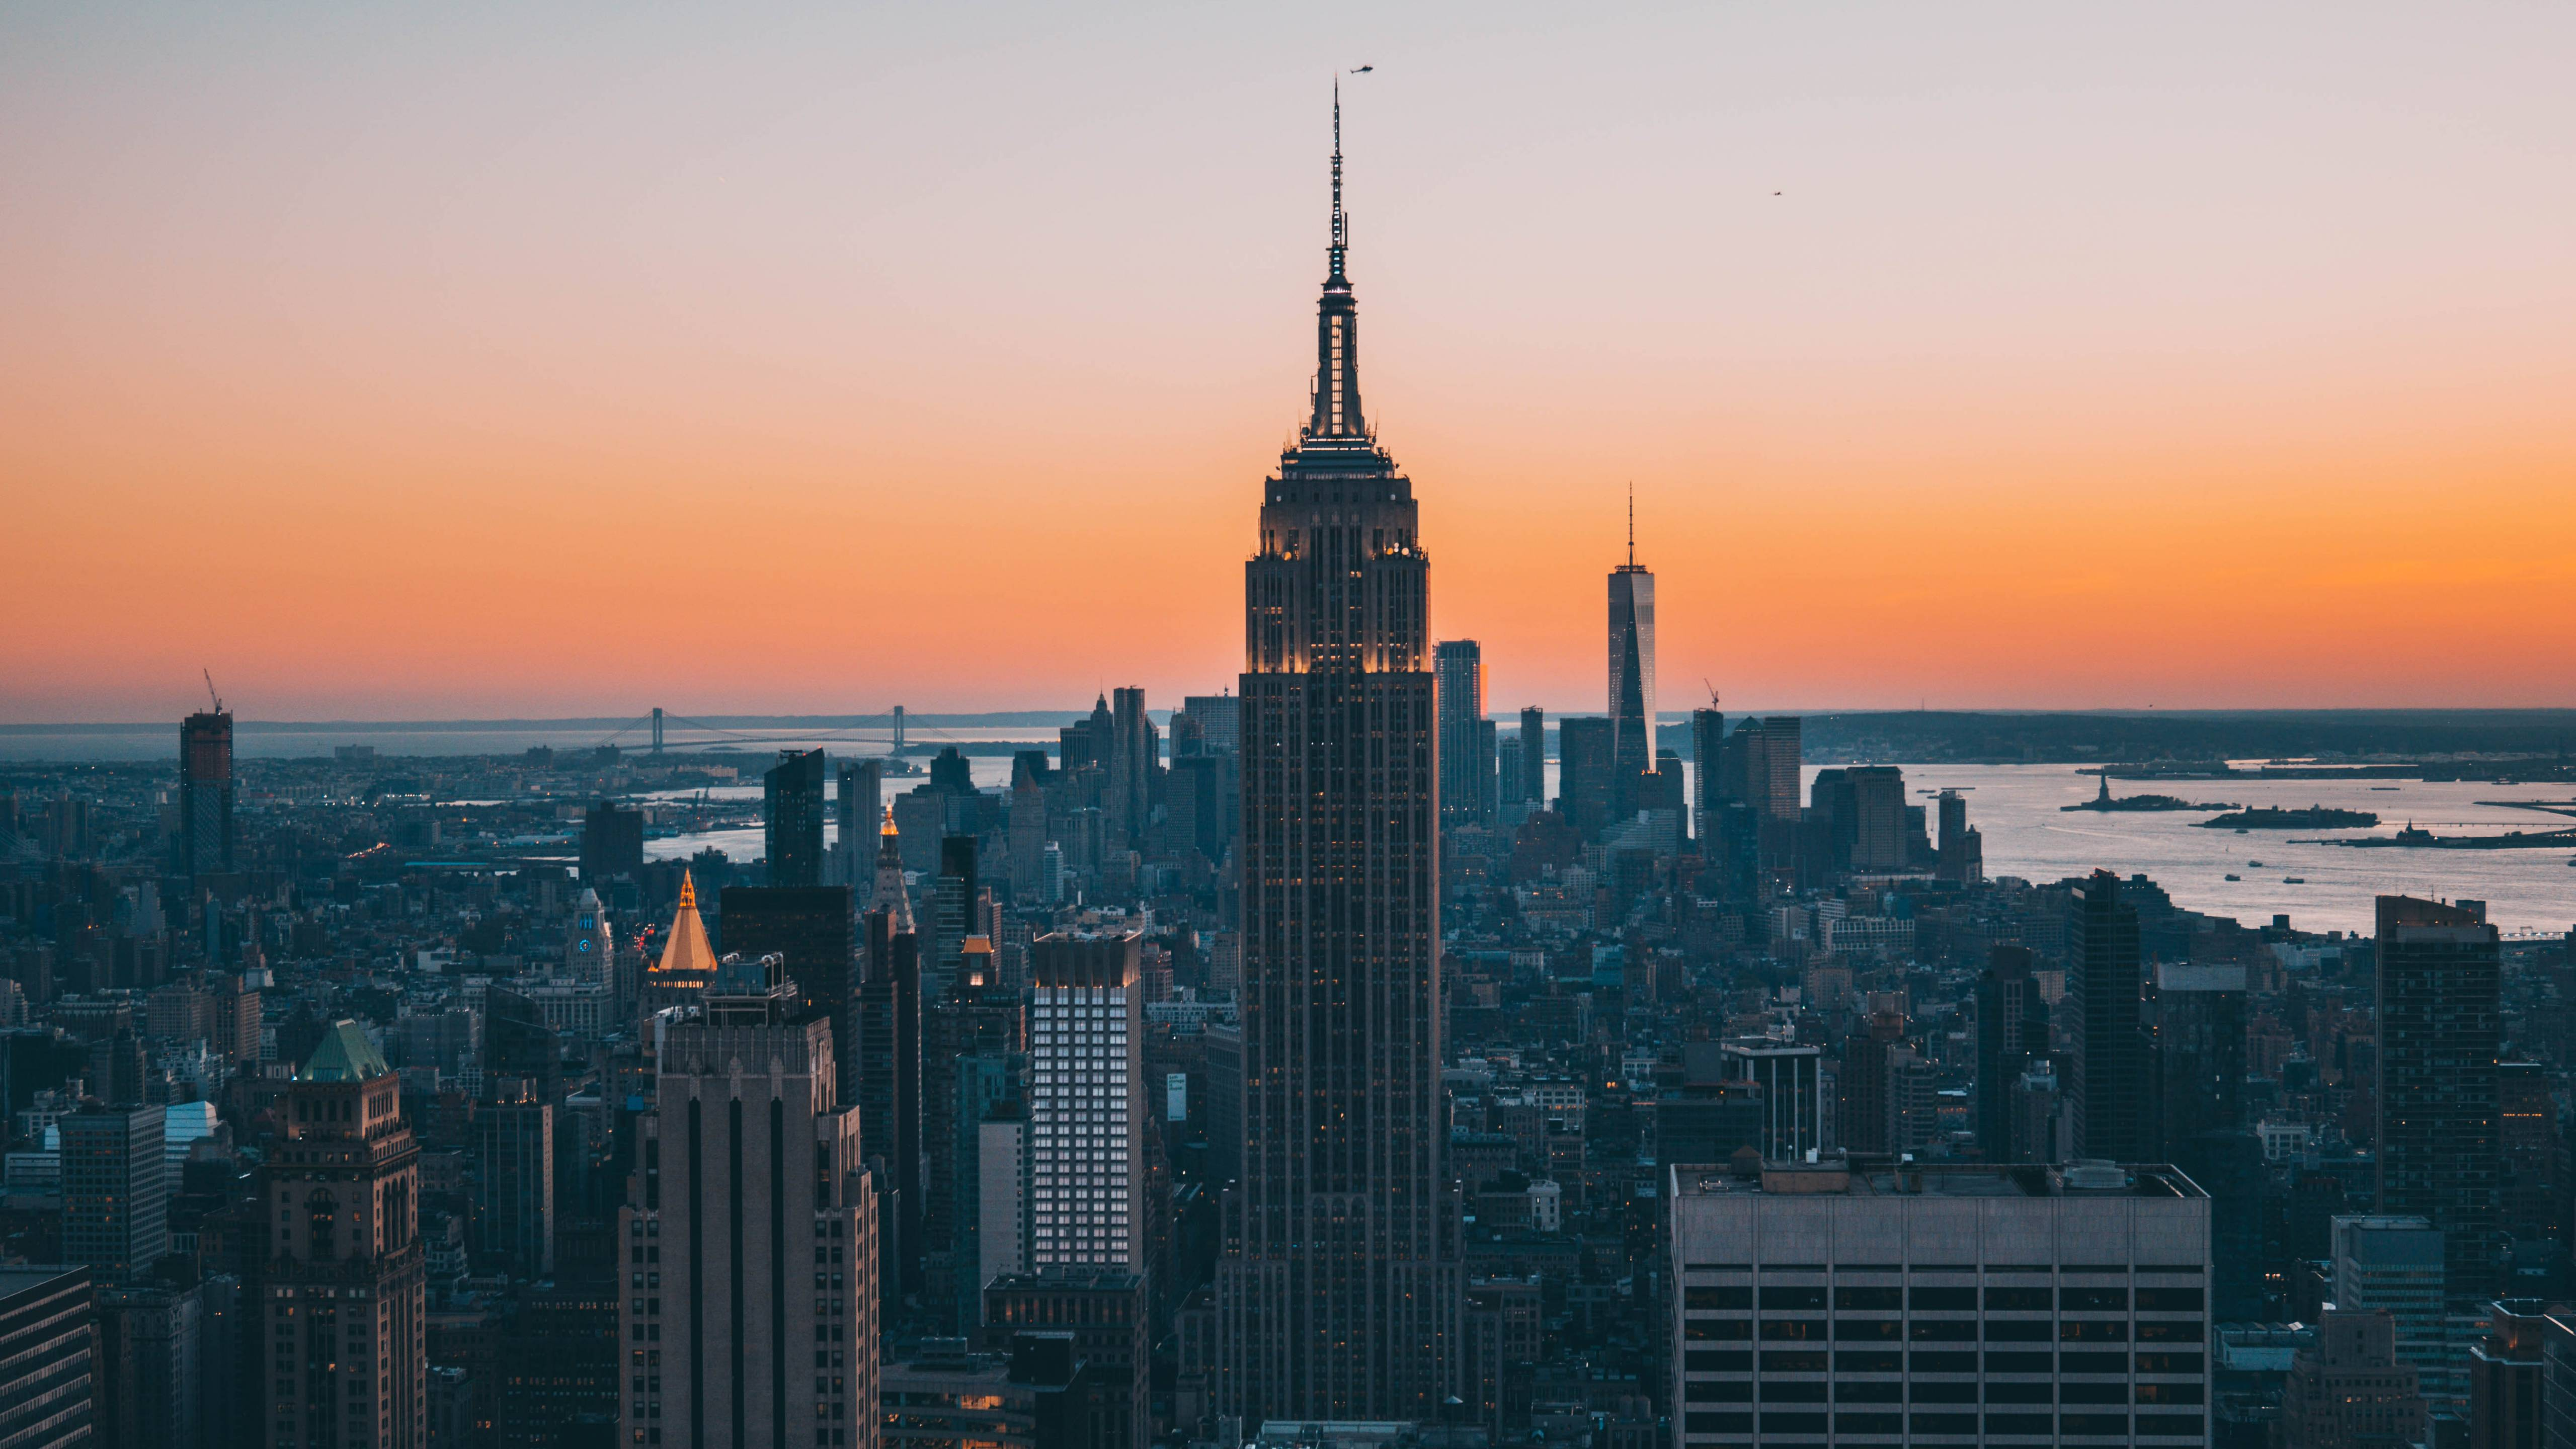 Download 5120x2880 wallpapers empire state building, buildings